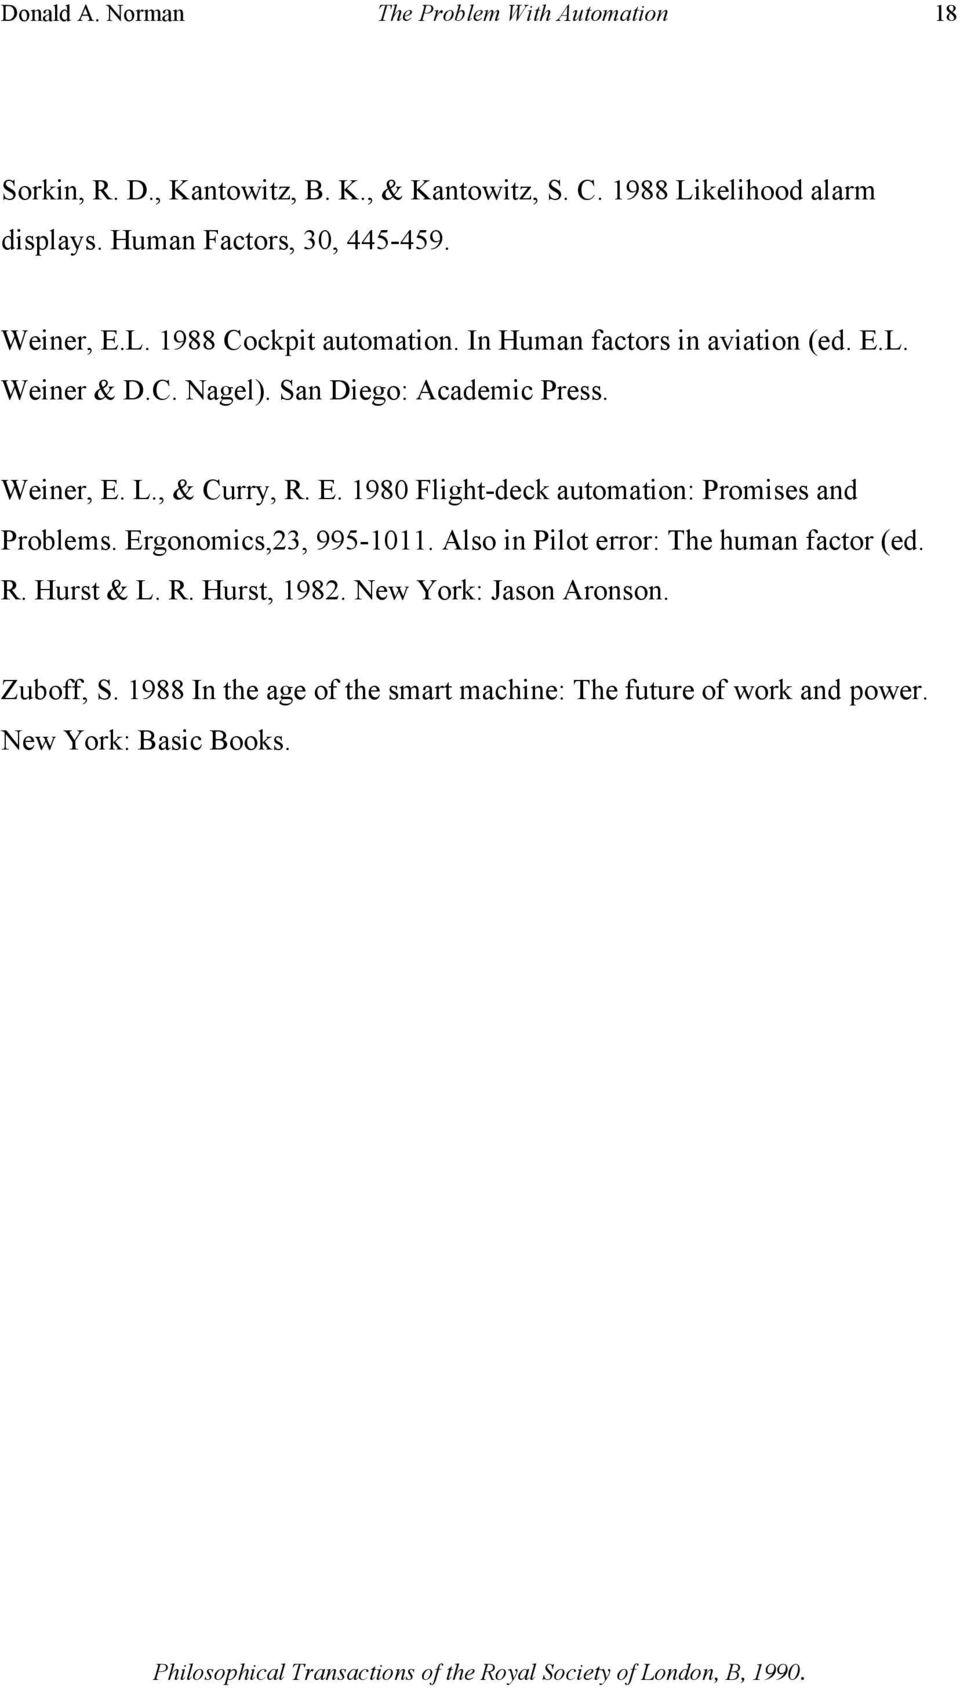 San Diego: Academic Press. Weiner, E. L., & Curry, R. E. 1980 Flight-deck automation: Promises and Problems. Ergonomics,23, 995-1011.